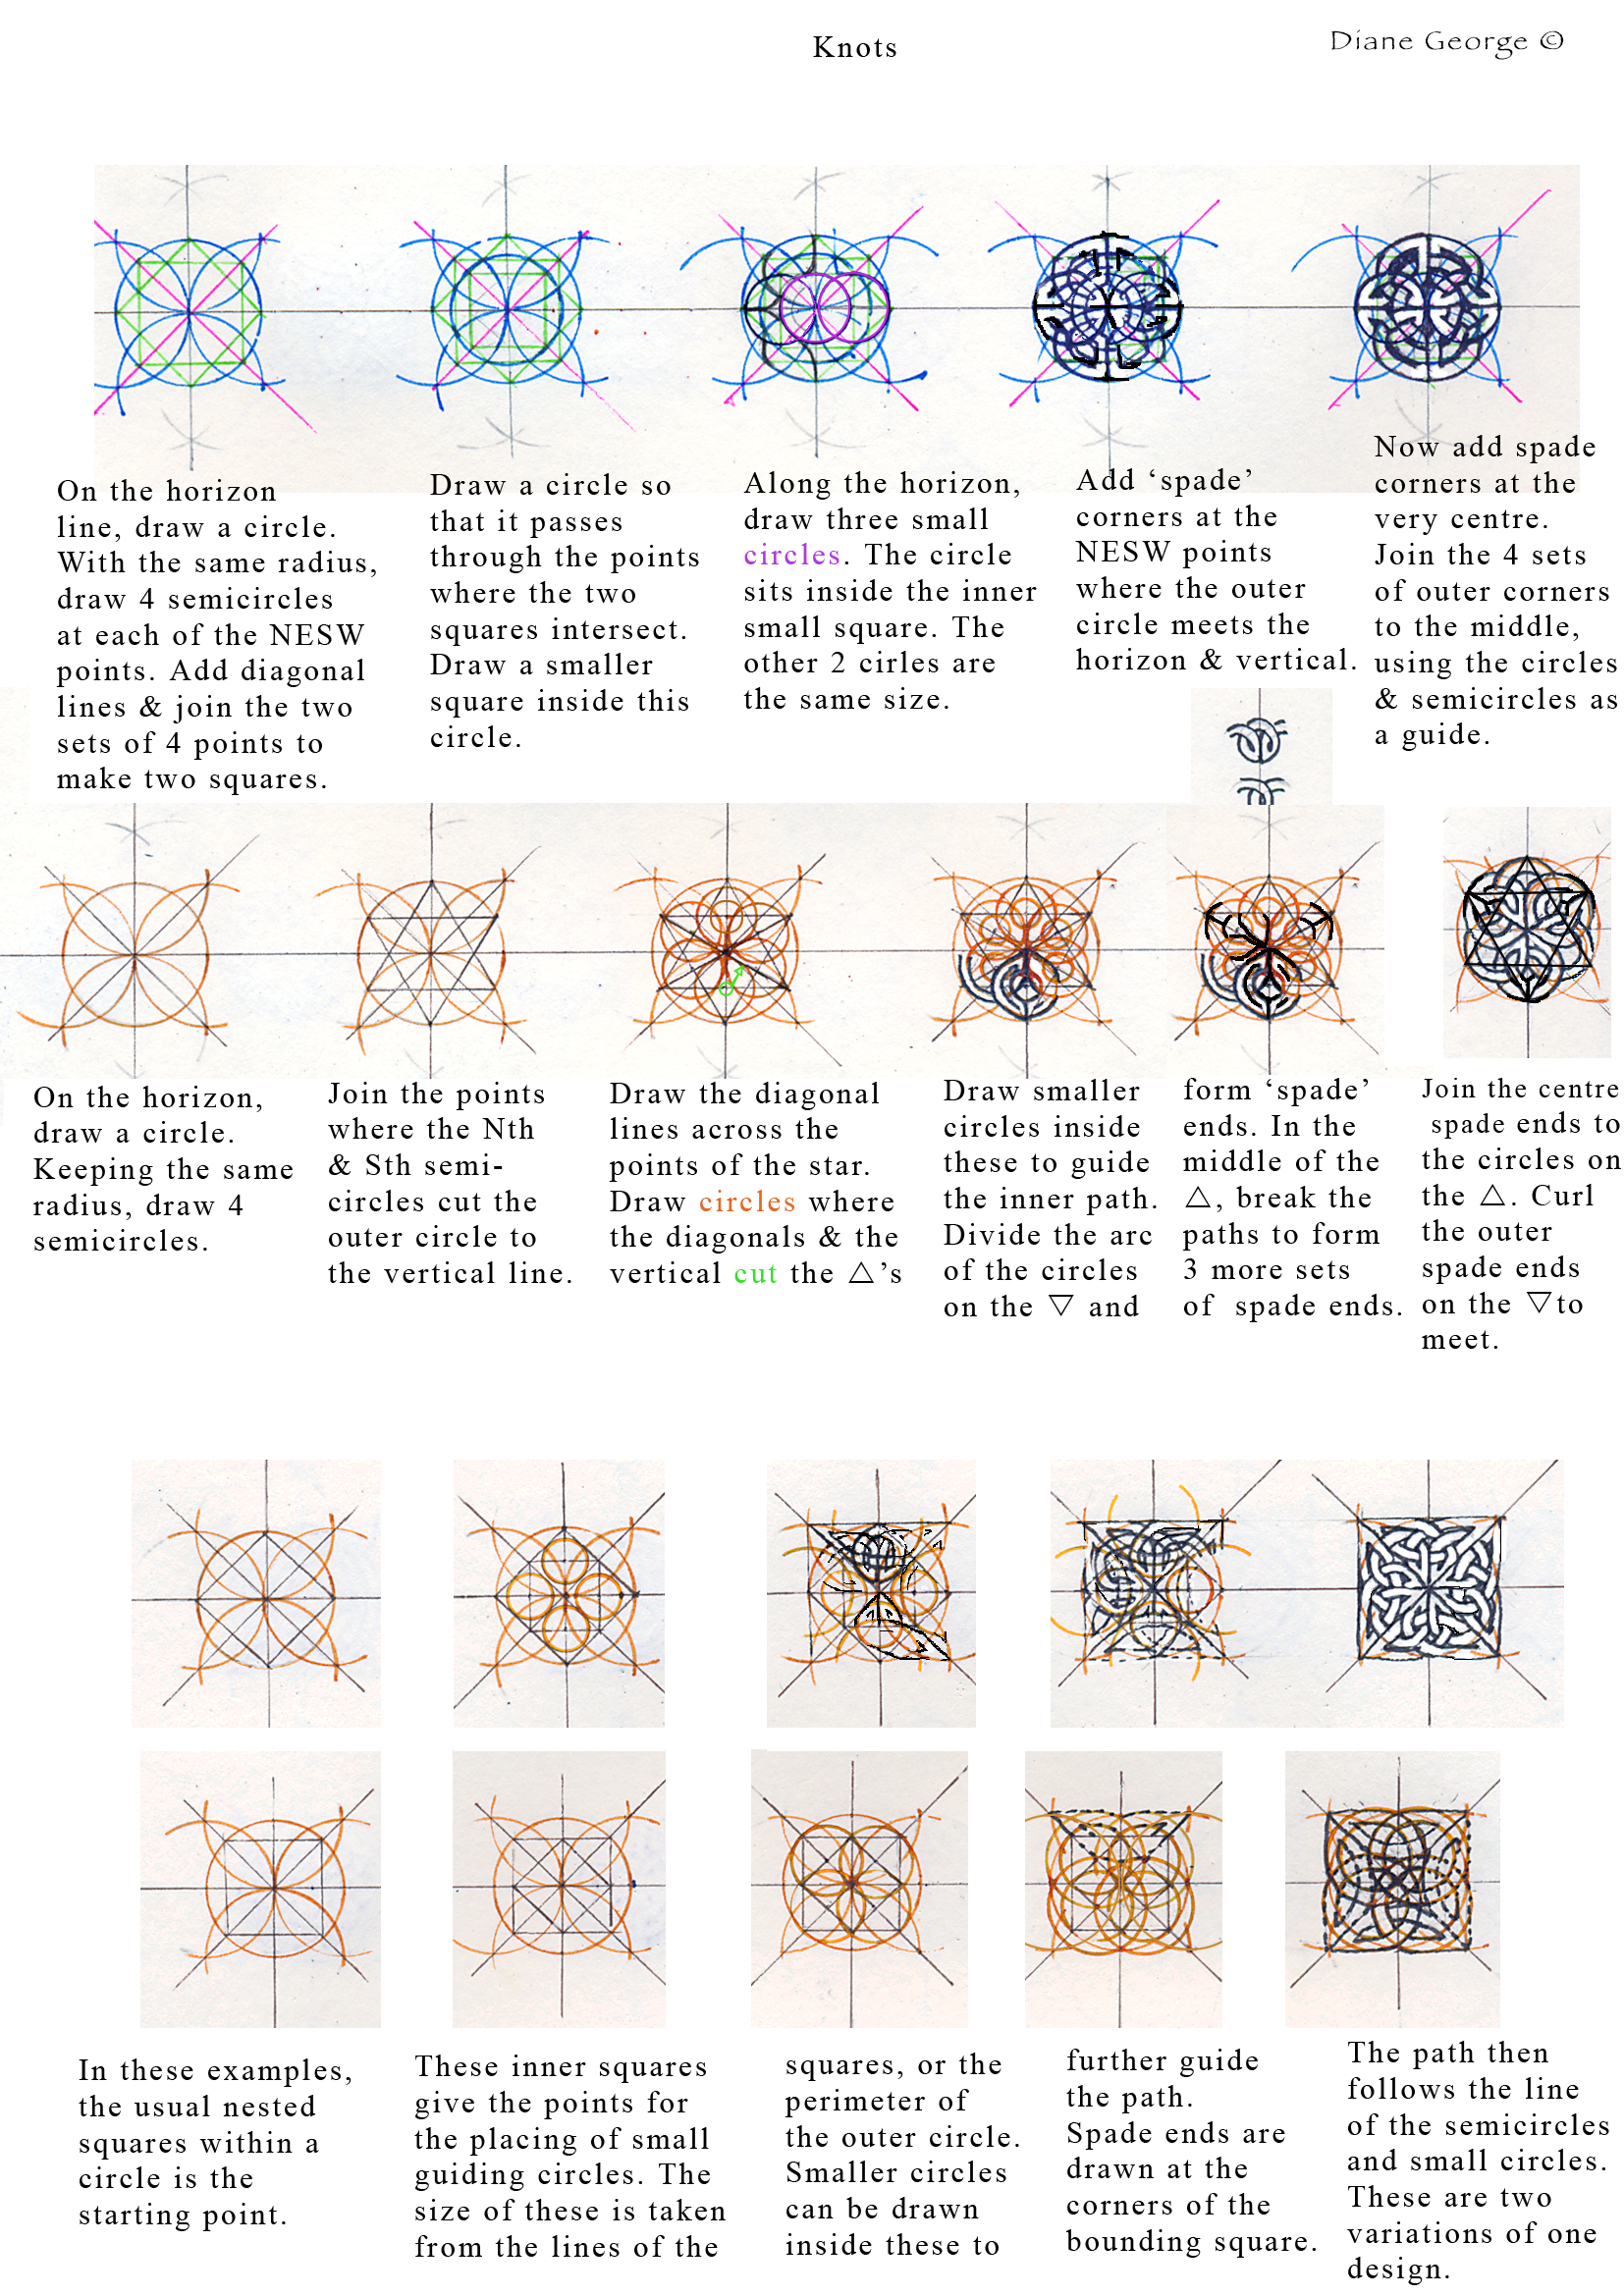 Further Knotwork Examples